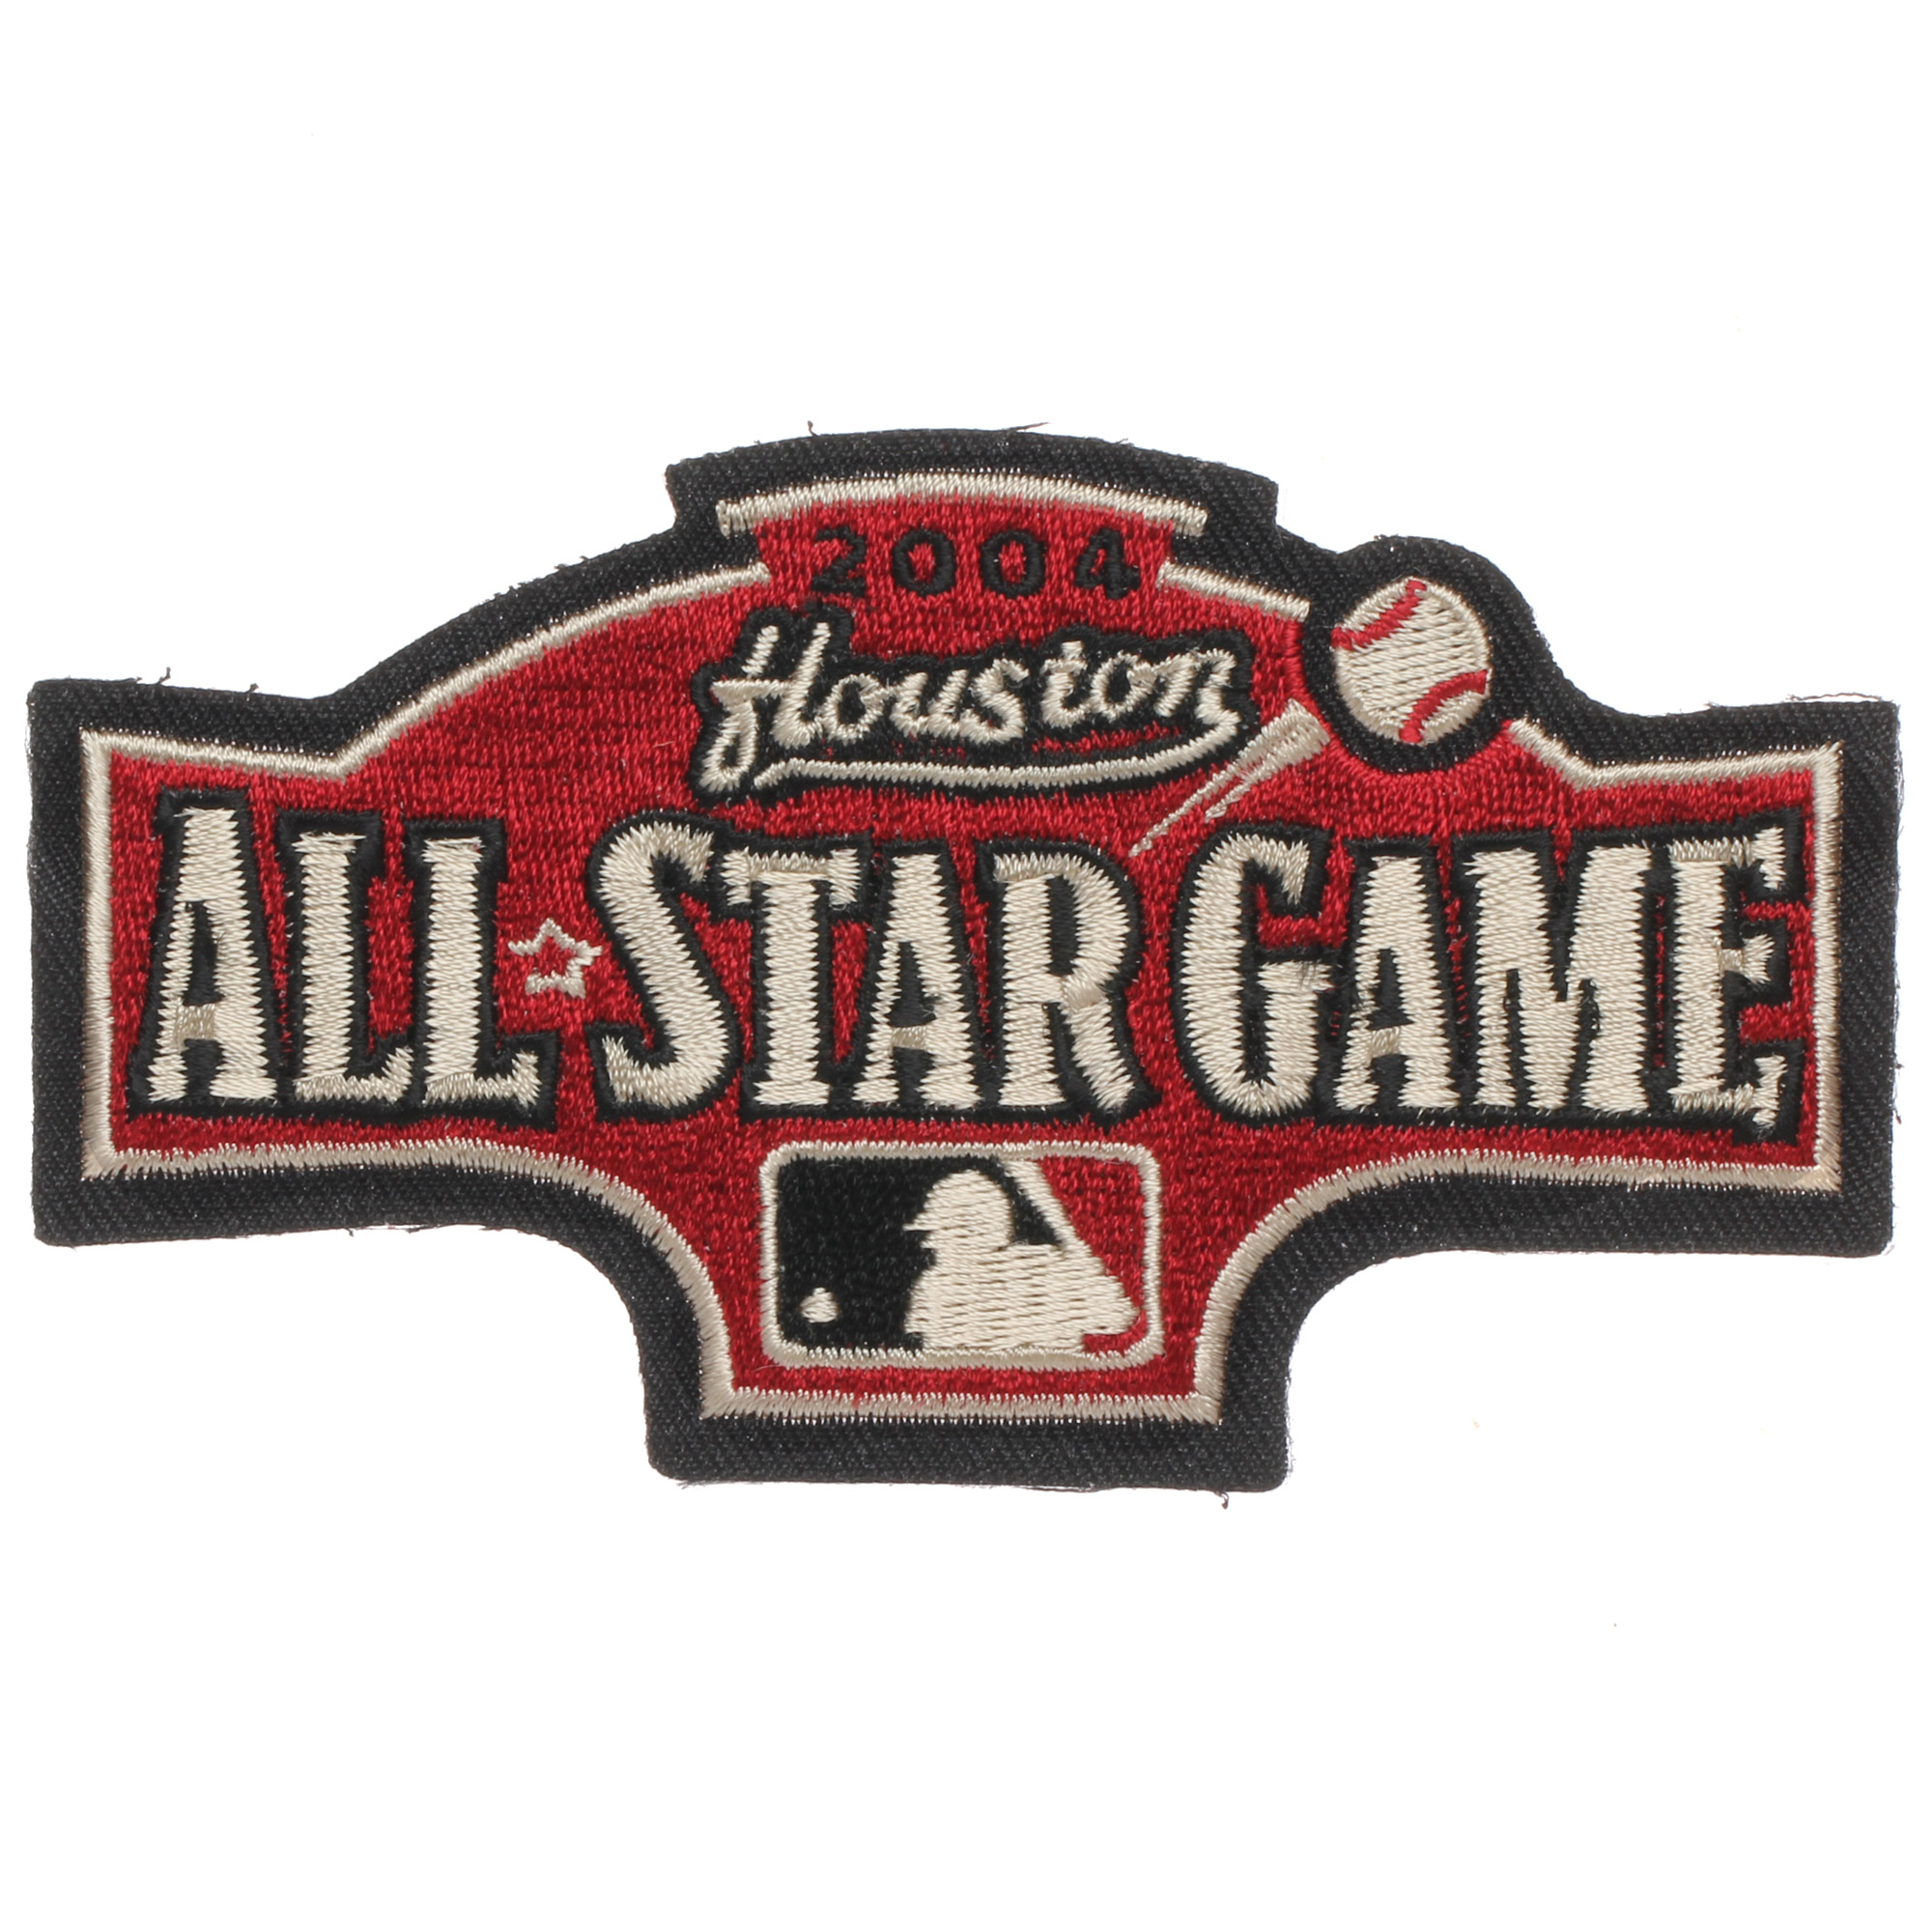 Replica 2004 All-Star Game Patch - No Size